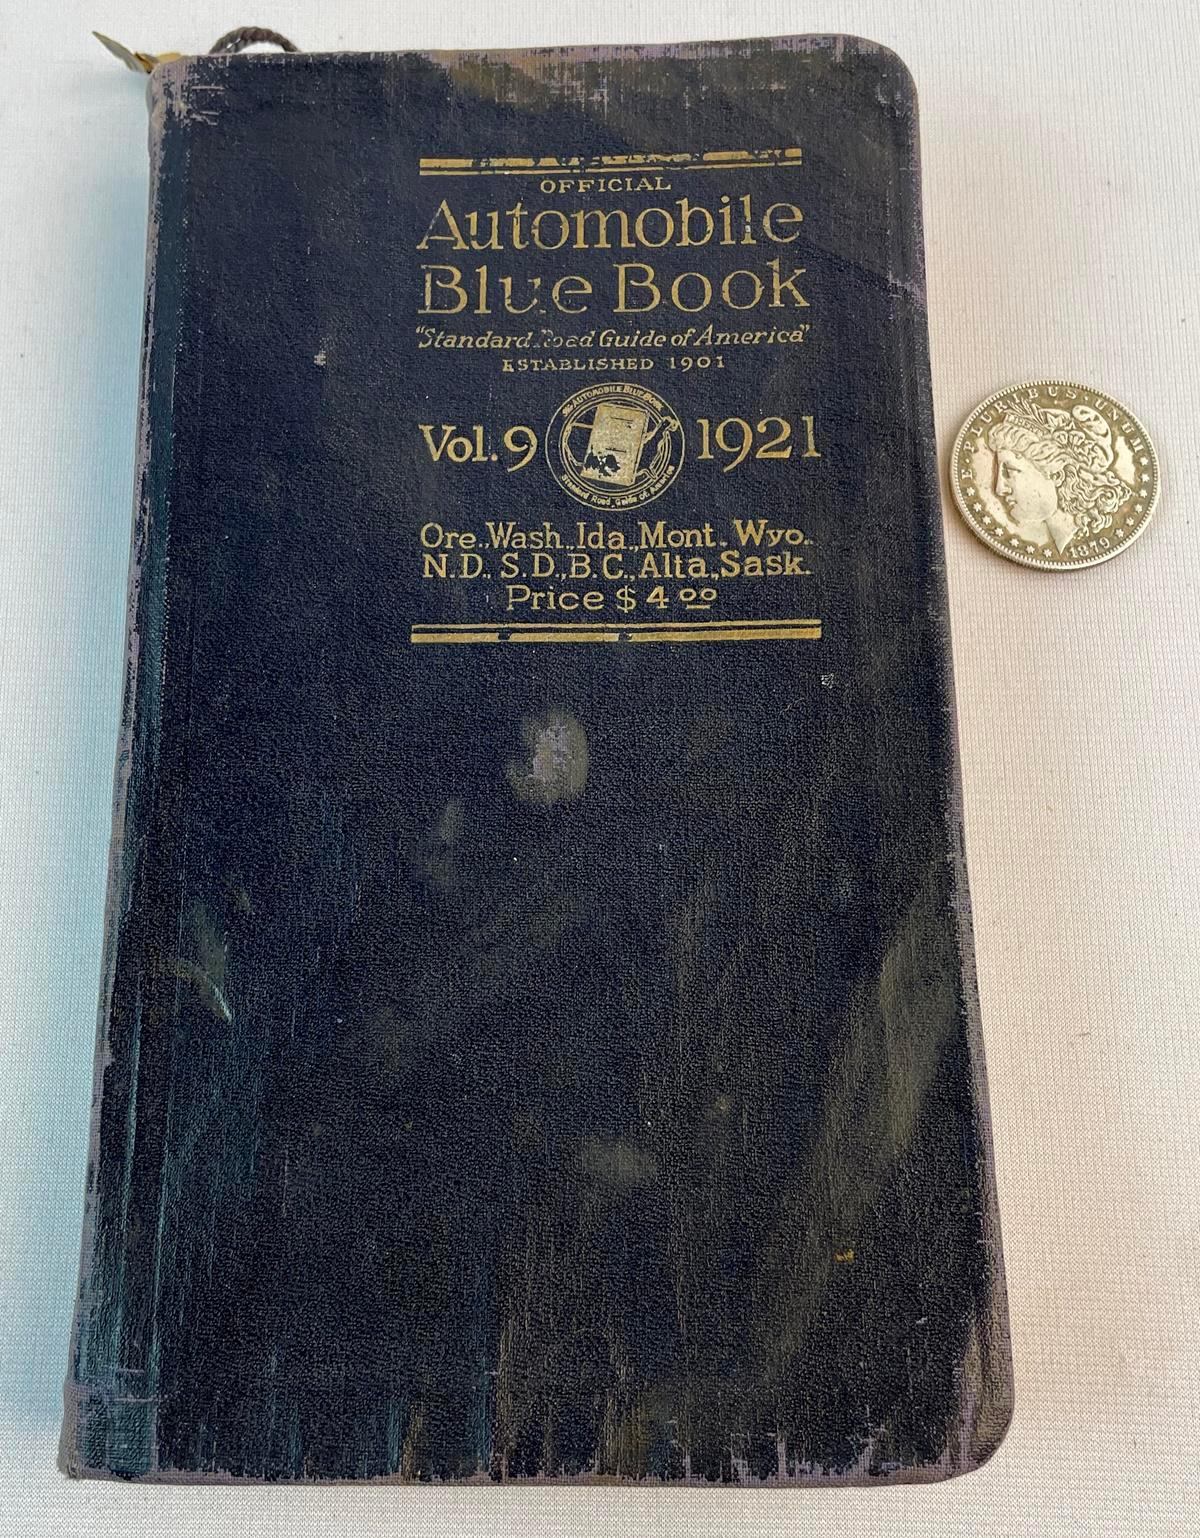 1921 Official Automobile Blue Book Vol. 9 ILLUSTRATED